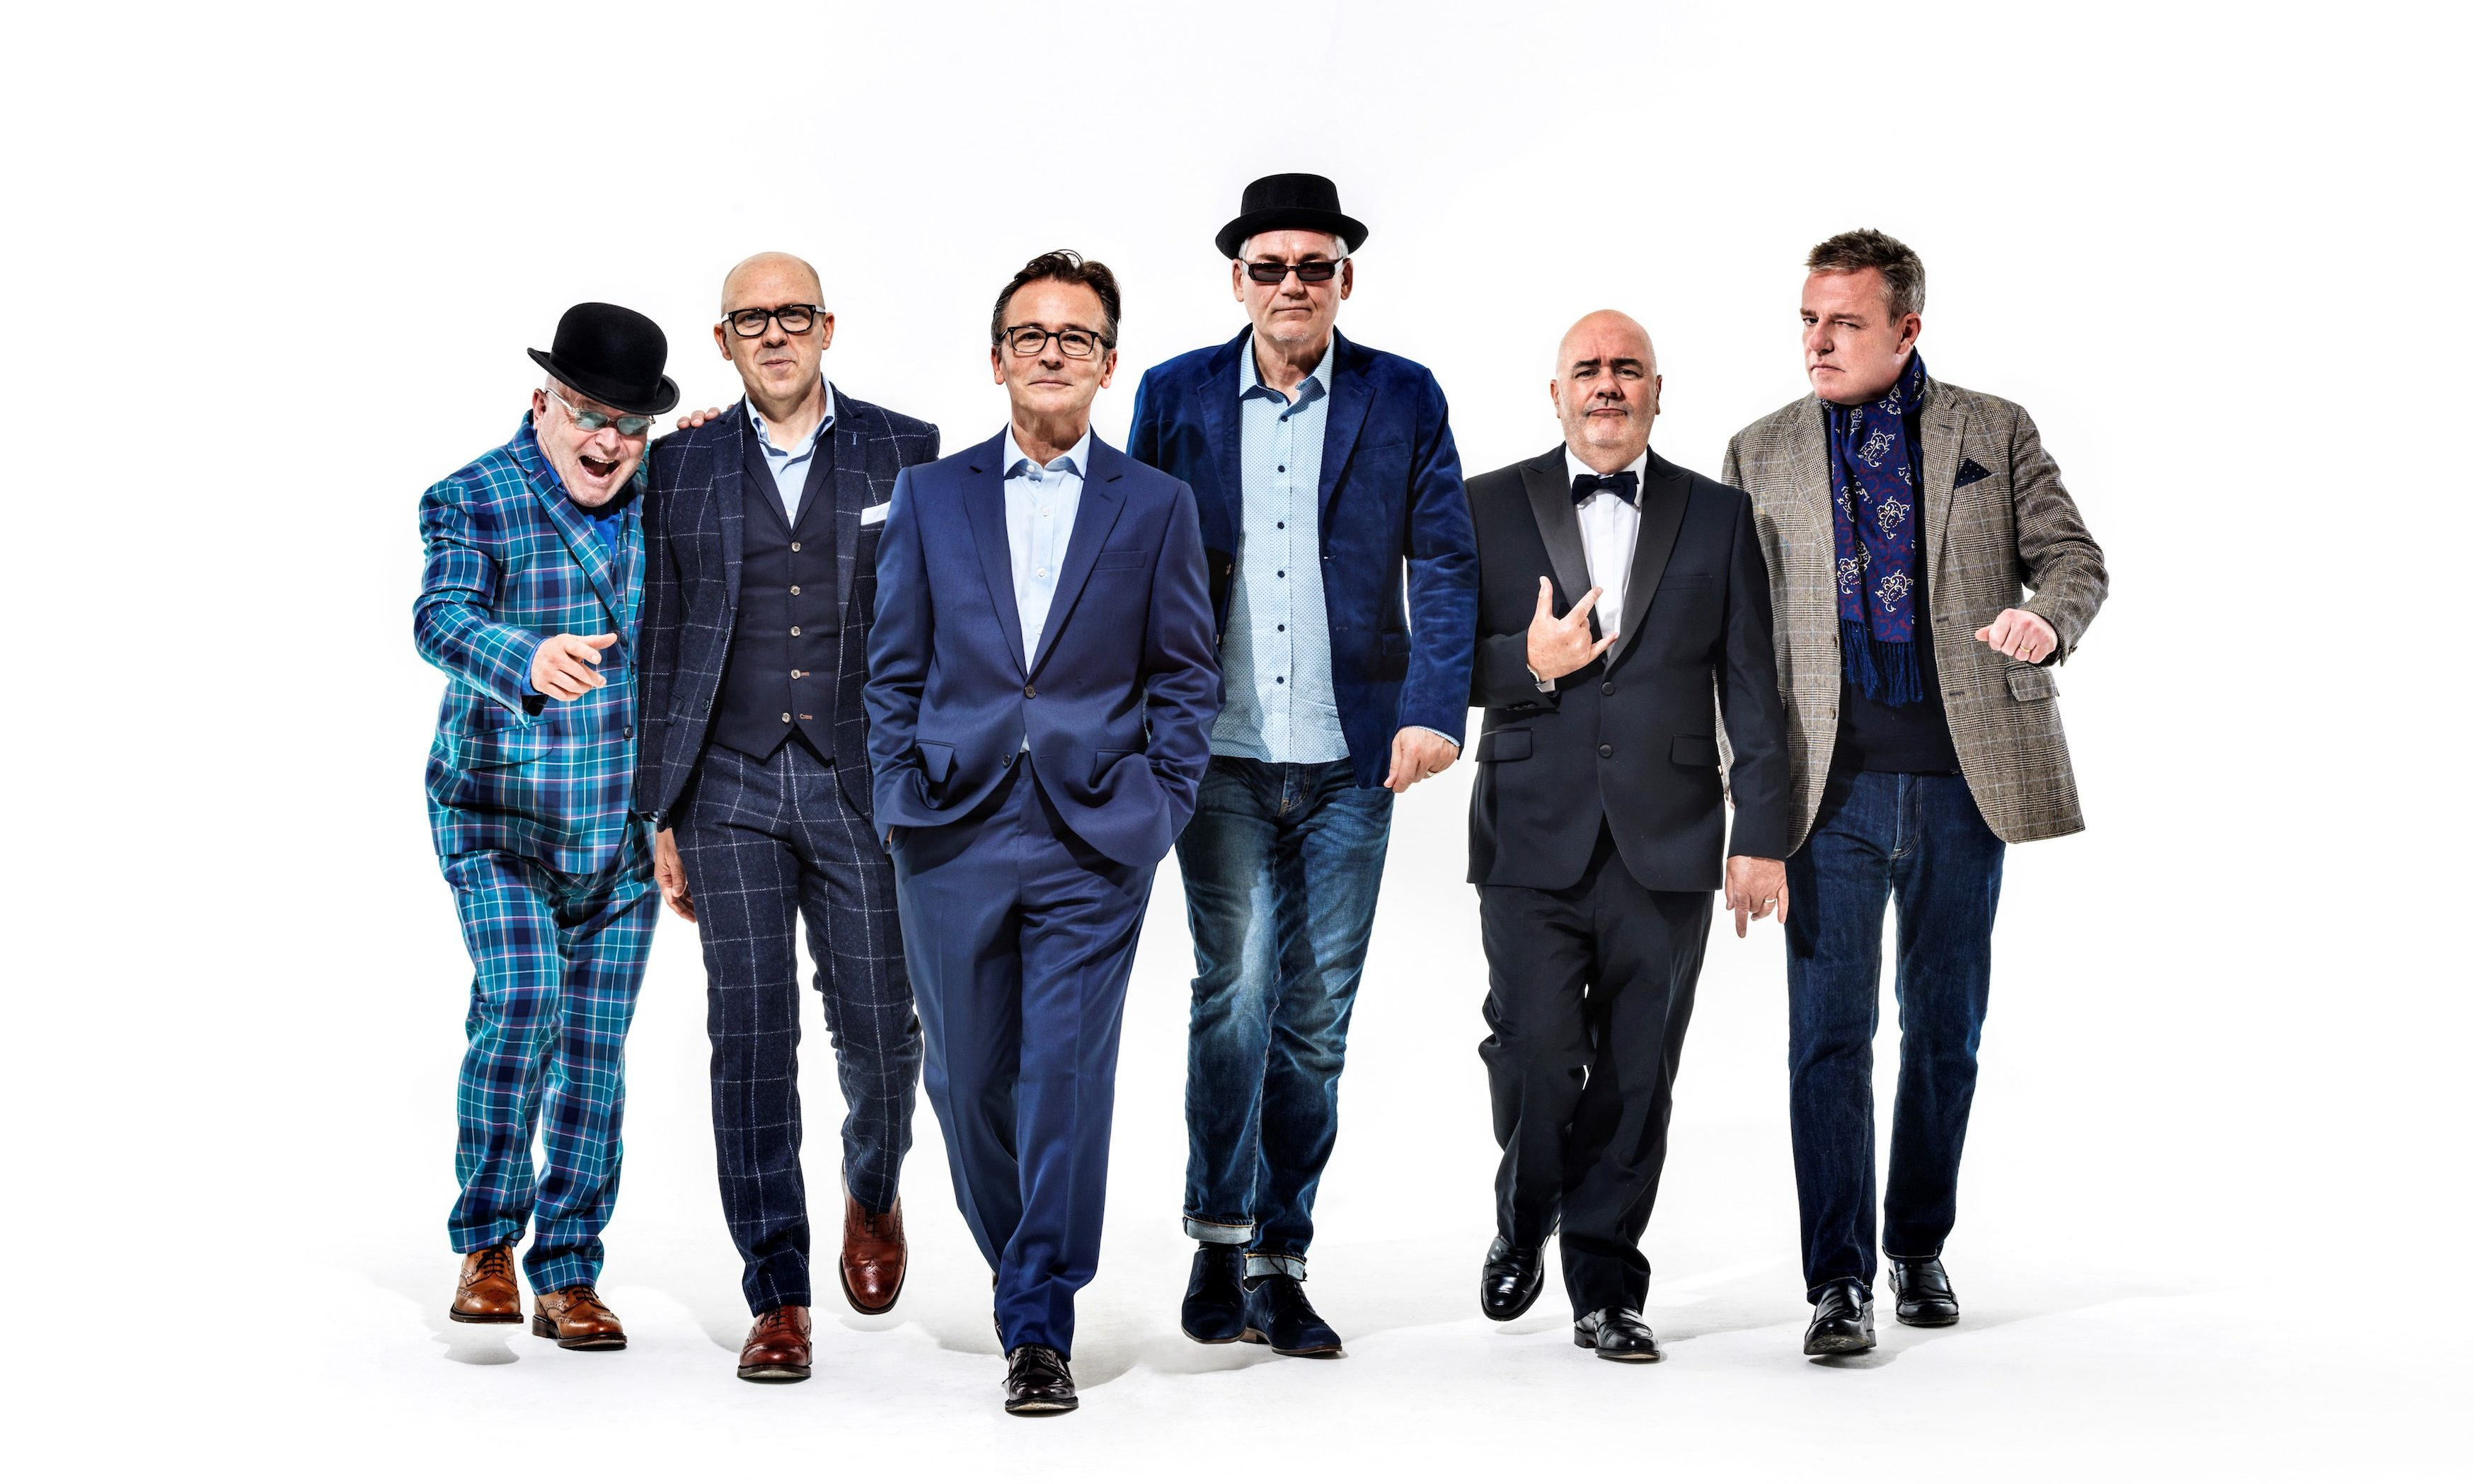 Madness were formed in 1976 and continue to perform to sell-out audiences across the UK.